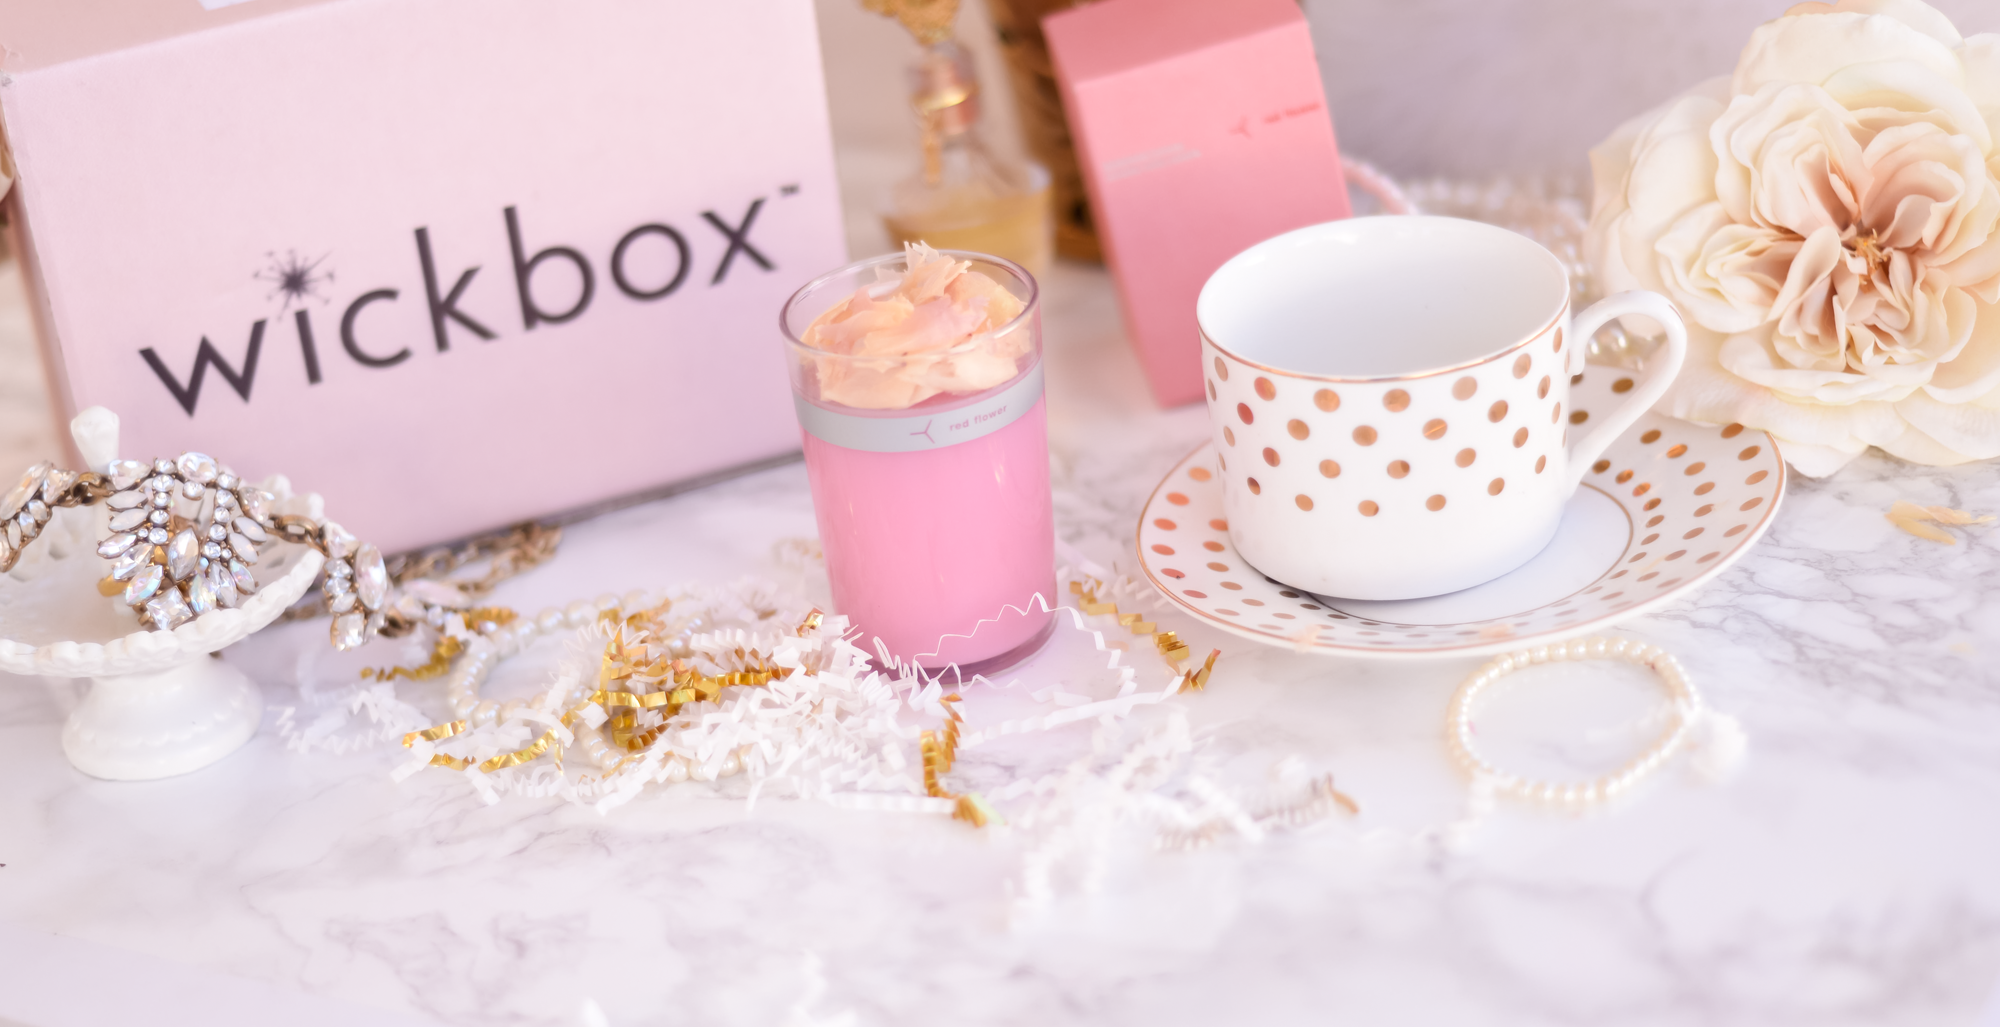 Wickbox Luxury Candle Subscription Review || The Chic Blonde